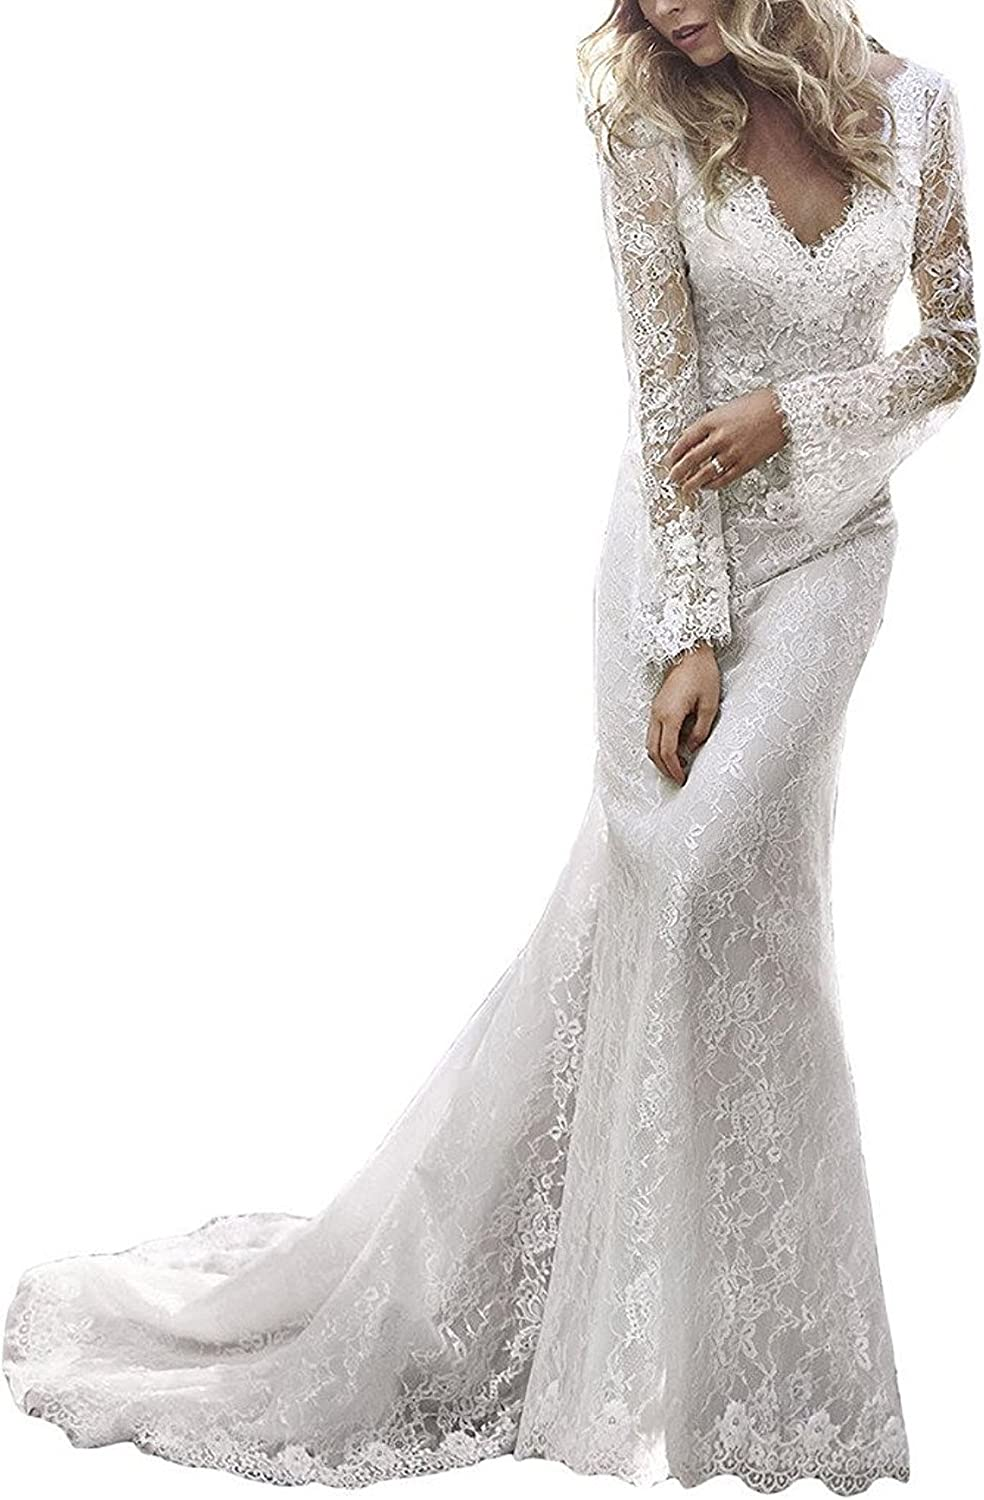 Weddinglee Wedding Dress Sexy Vintage Long Sleeve Lace Wedding Dresses for Bride Open Back 2017 Bridal Gowns